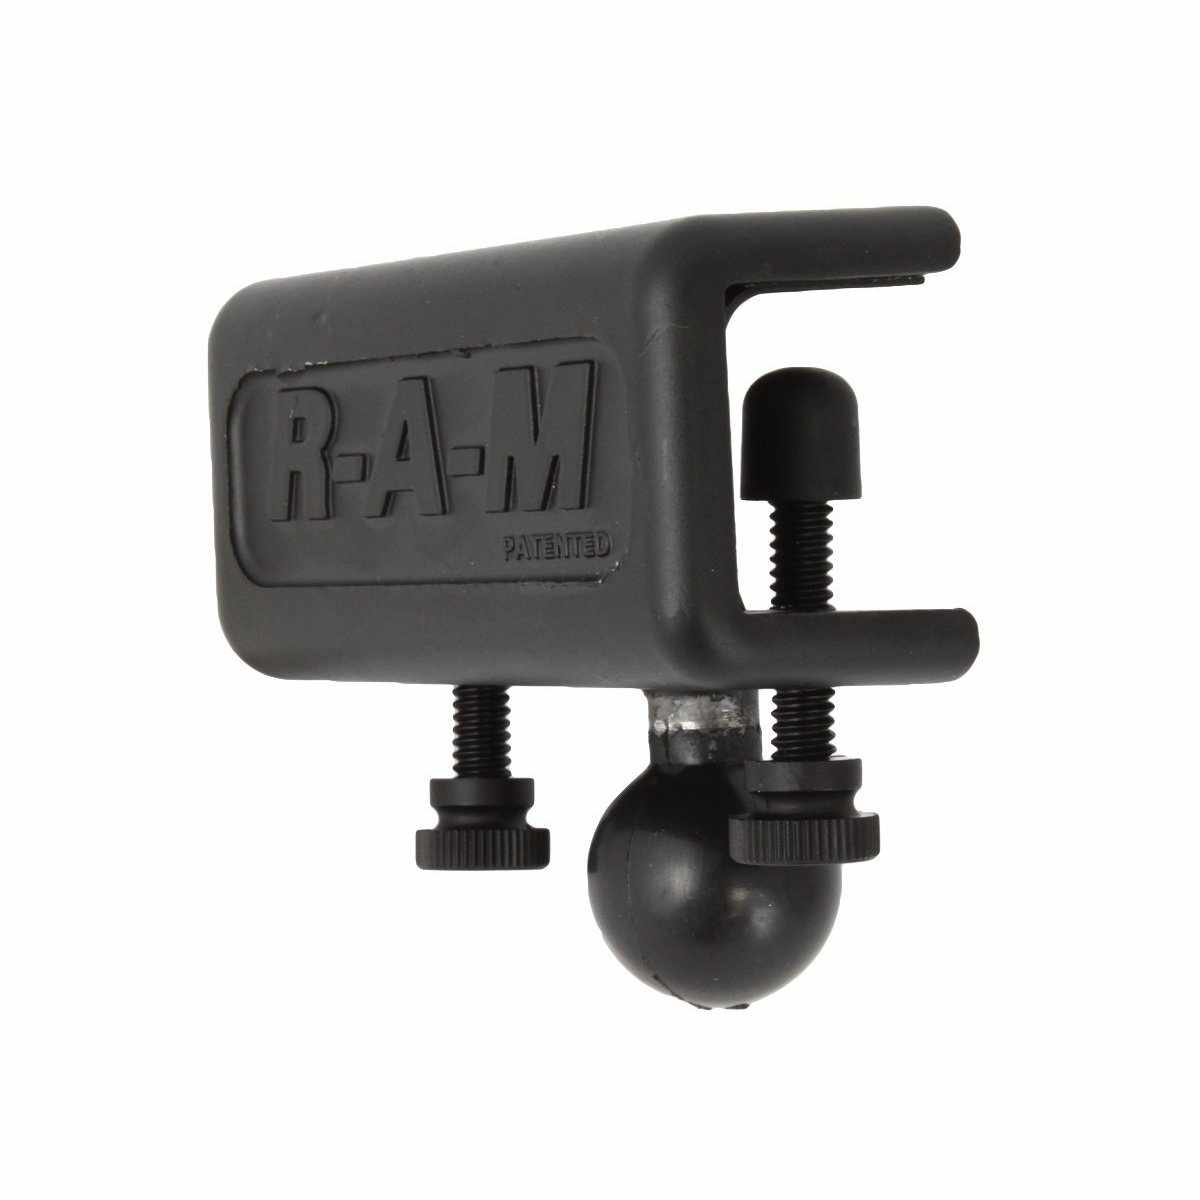 "RAM Glare Shield Clamp Base with 1"" Ball (RAM-B-259U) - Modest Mounts"